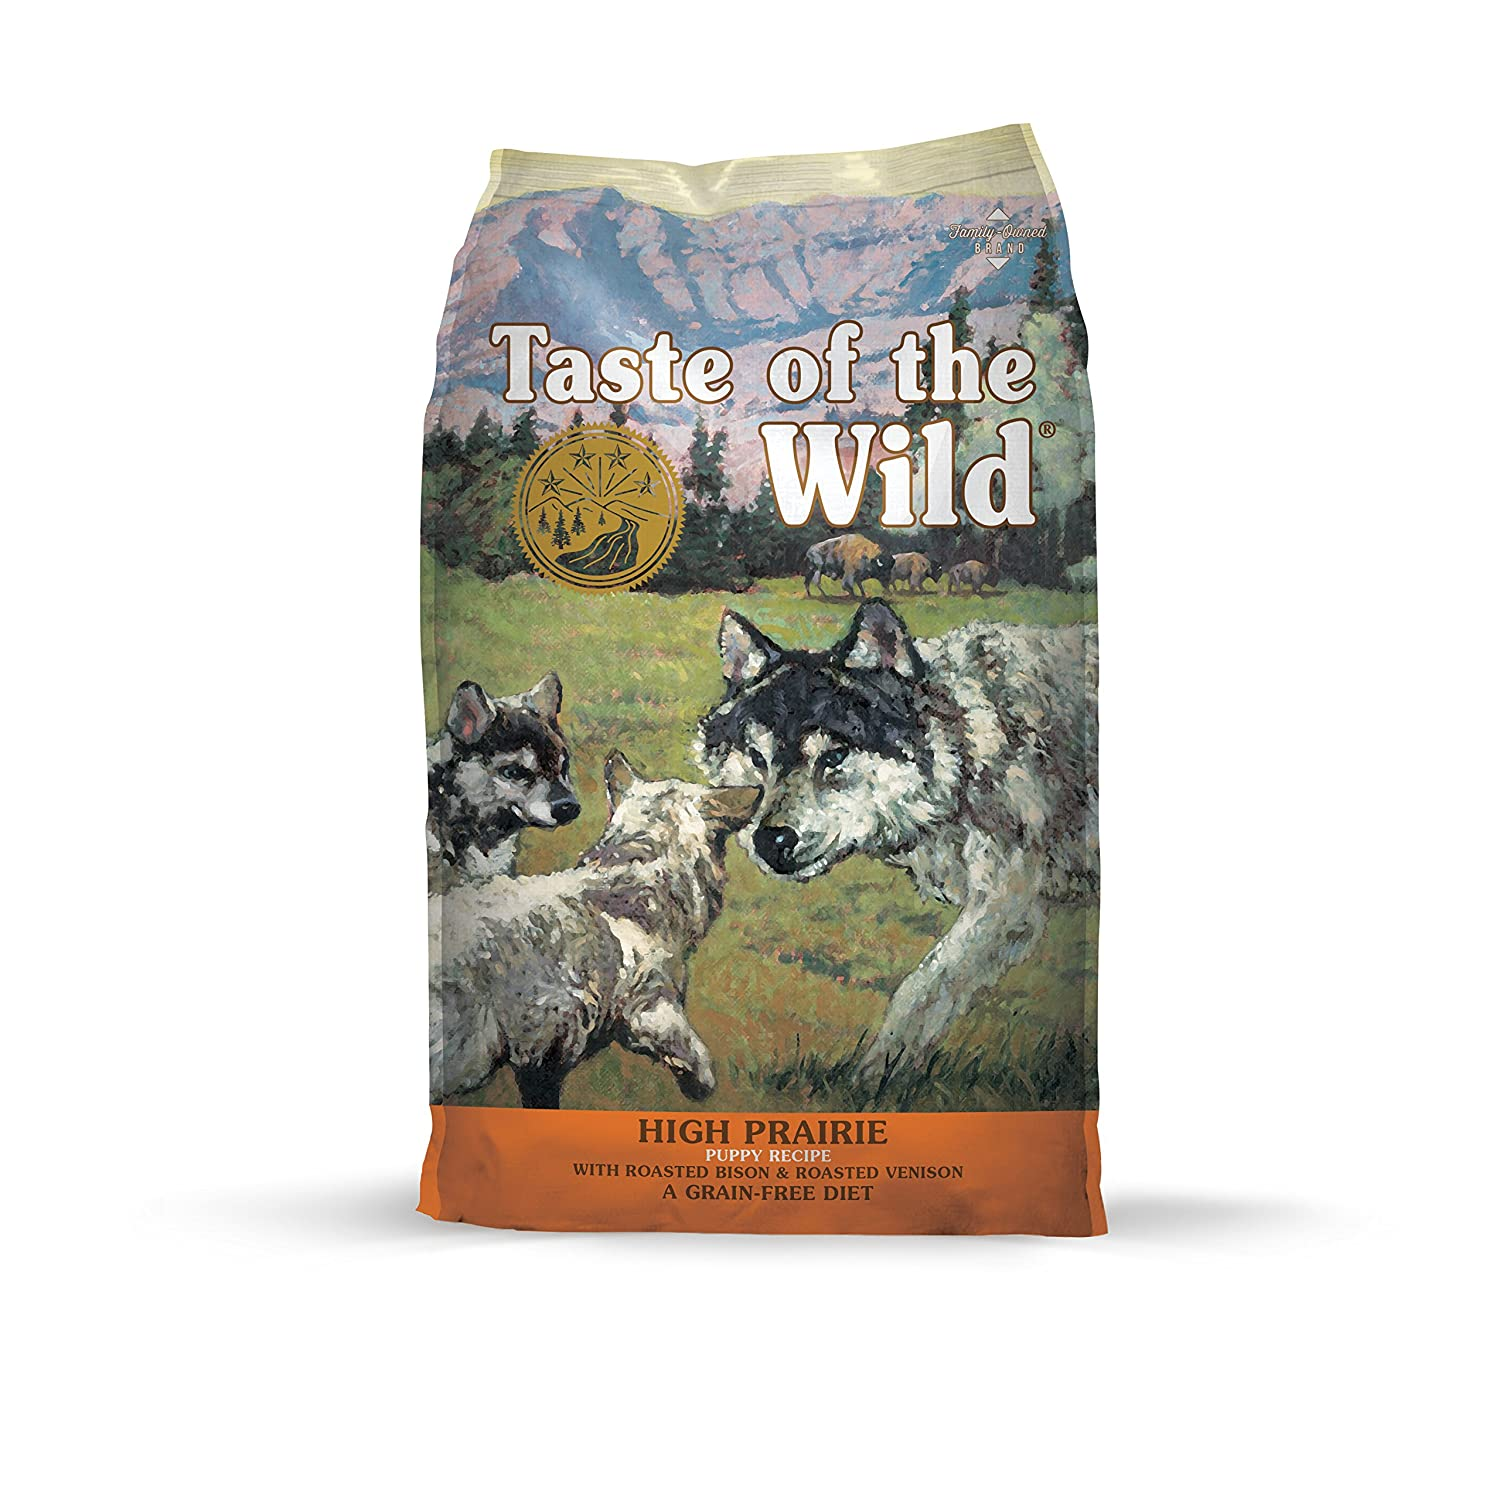 6.Taste of the Wild High Prairie Puppy Grain-Free